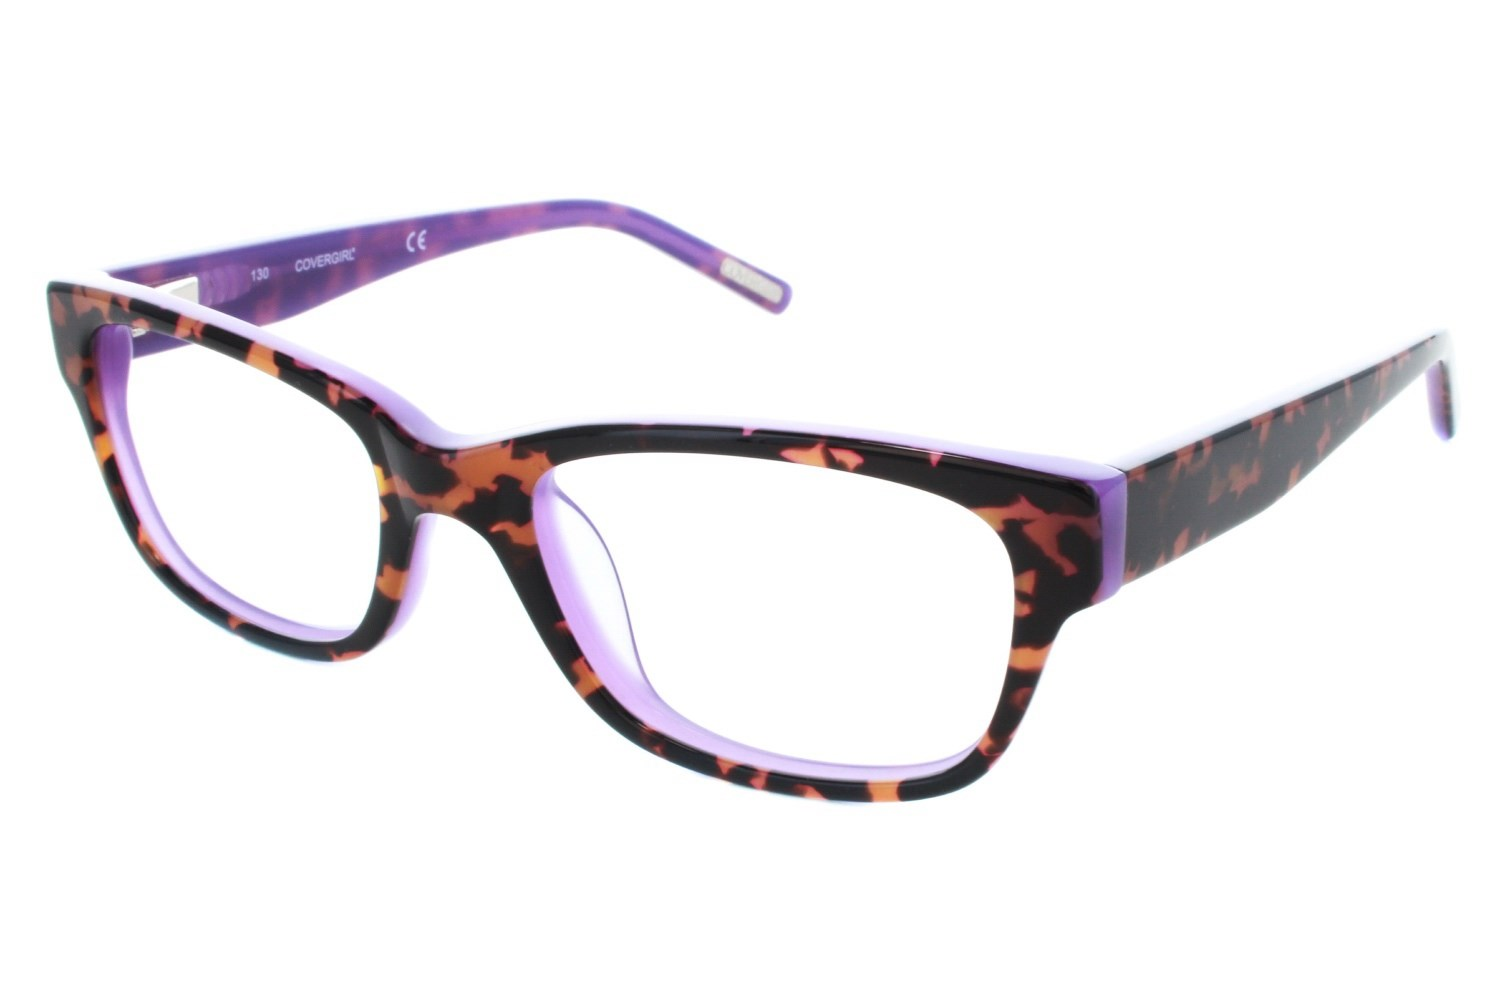 Covergirl CG0516 Prescription Eyeglasses Frames